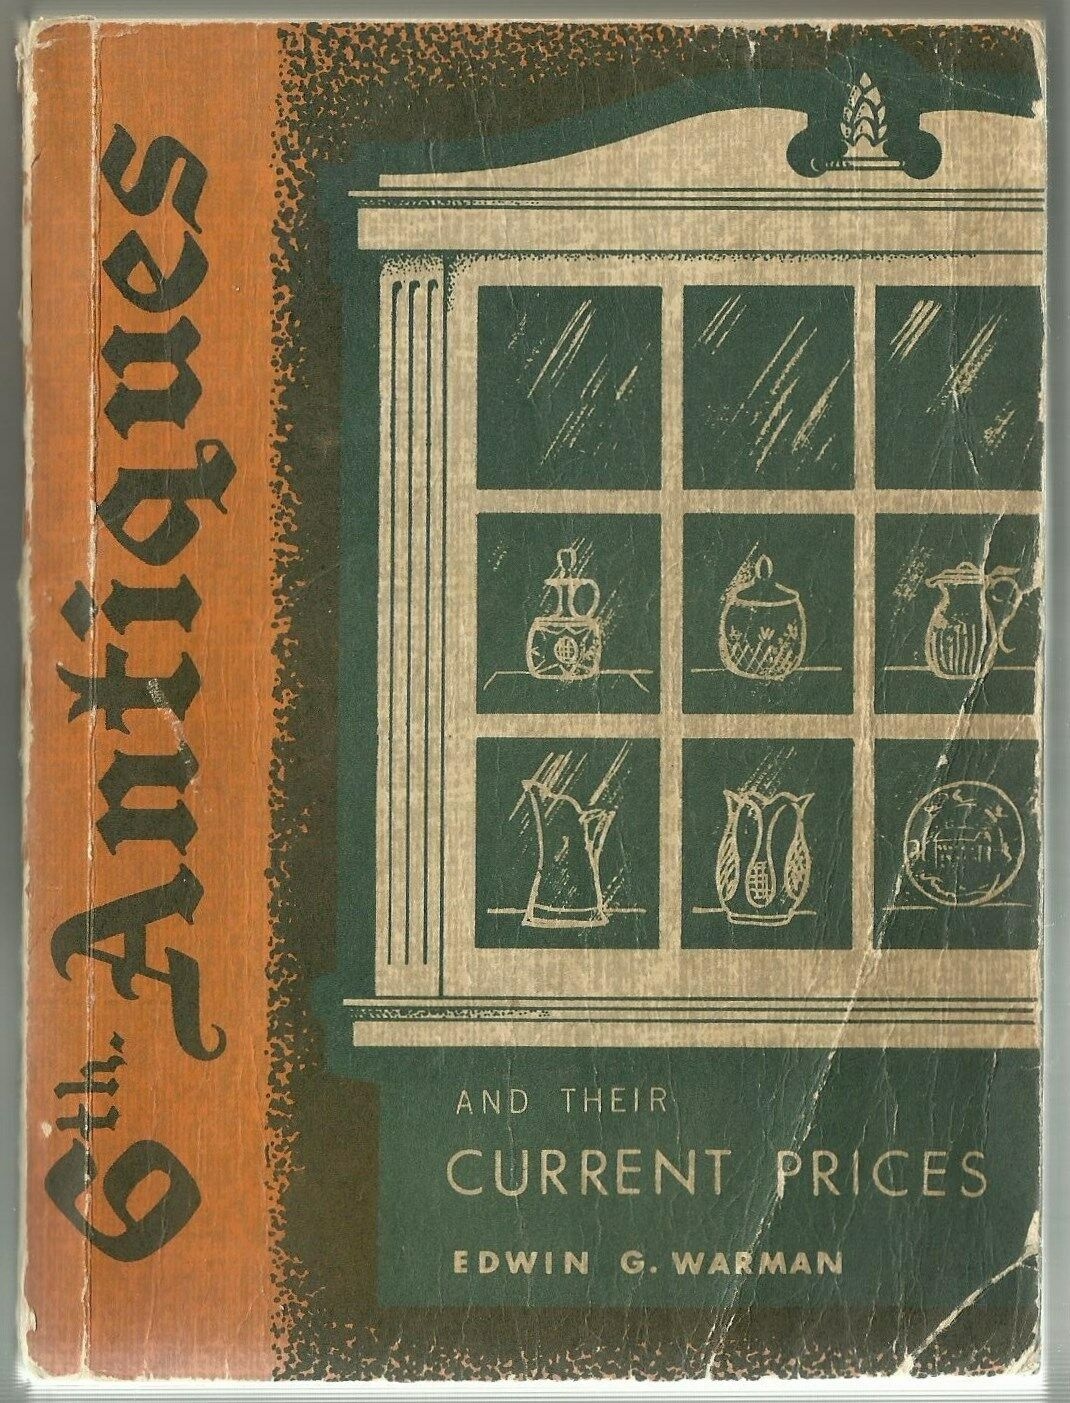 Warman's 6Th Antique Price Guide 1961 2Nd Edition 2Nd Printing Copyright 1960